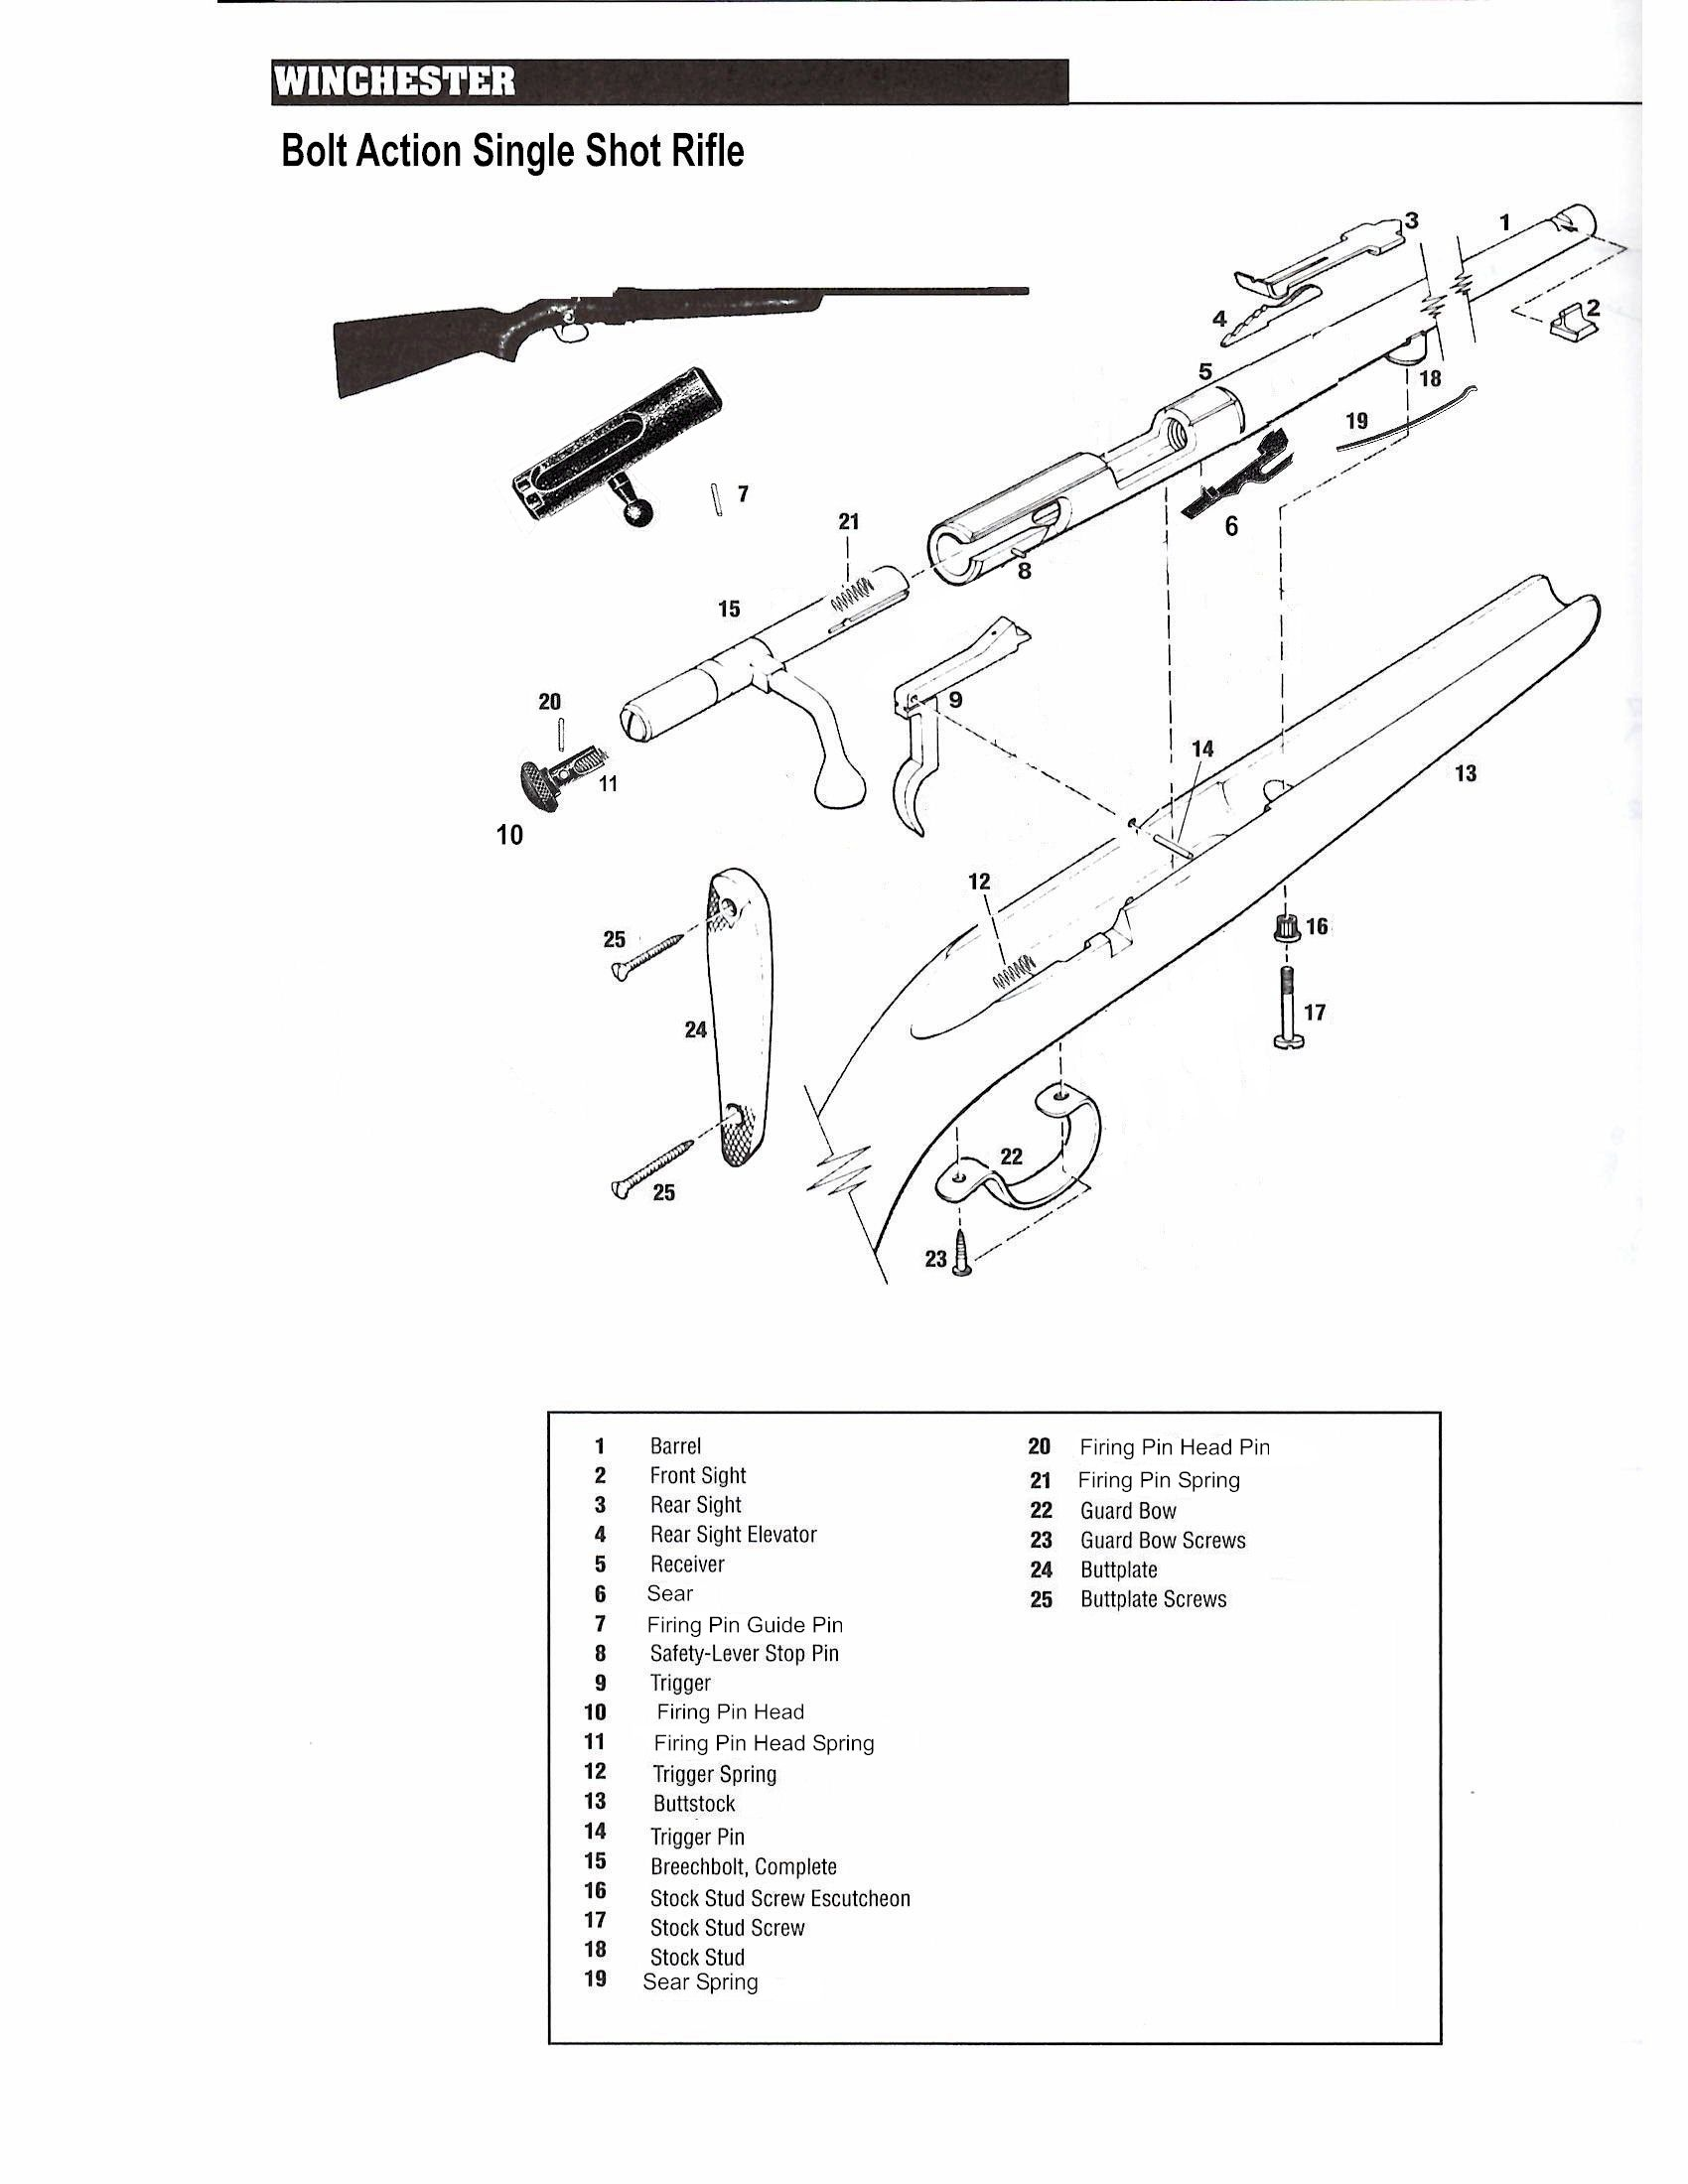 Parts Of The Bolt Action 22 Winchester Rifles